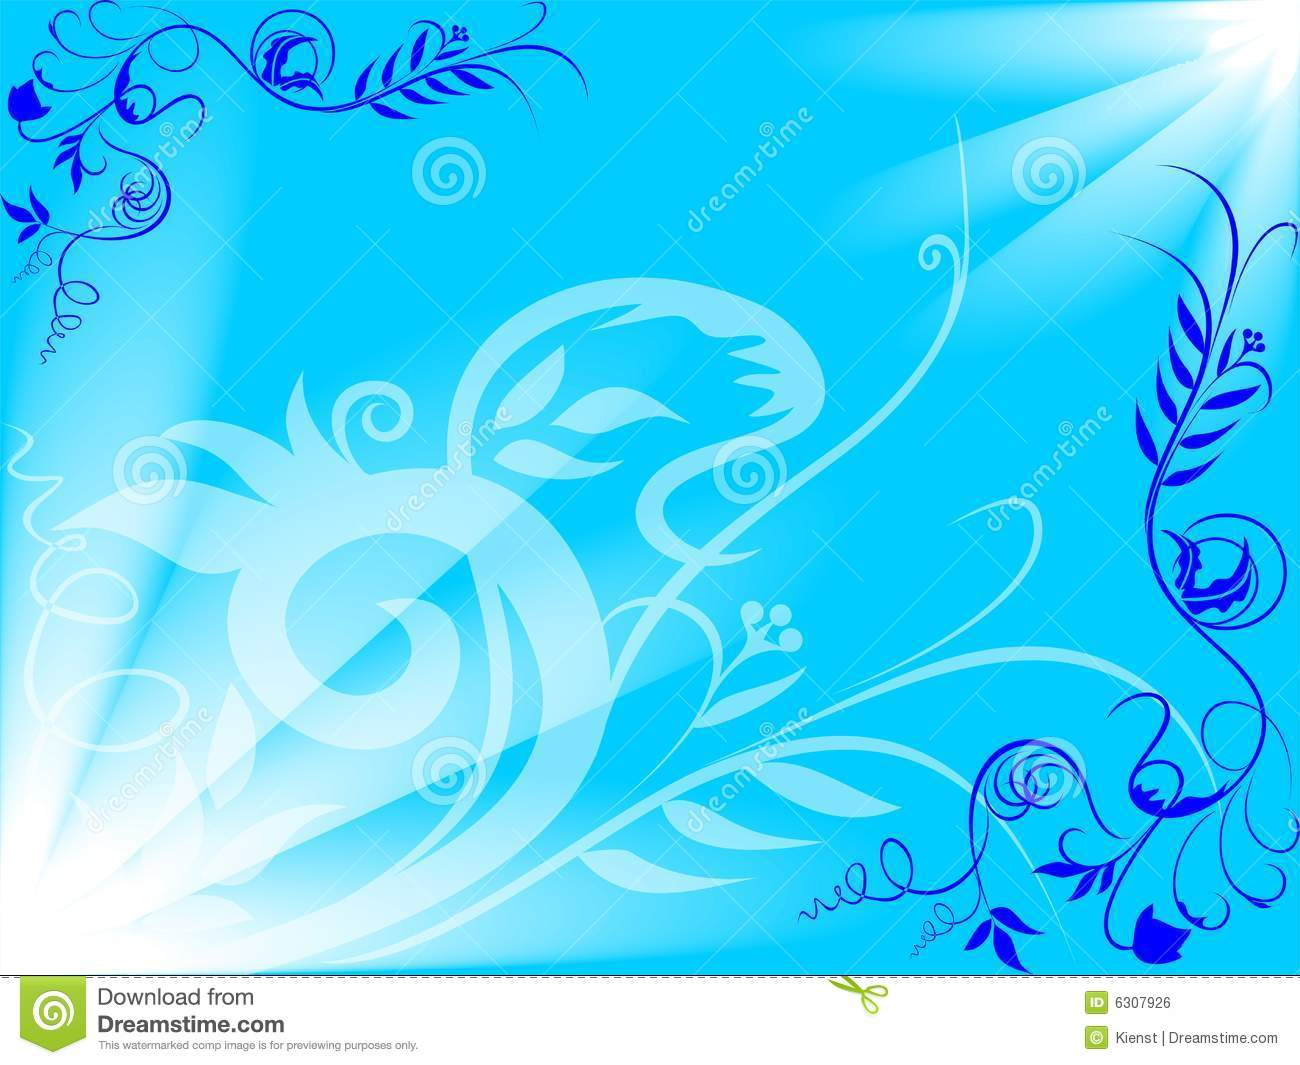 Background Pastel Biru Blue Flower Background Stock Vector. Image Of Party